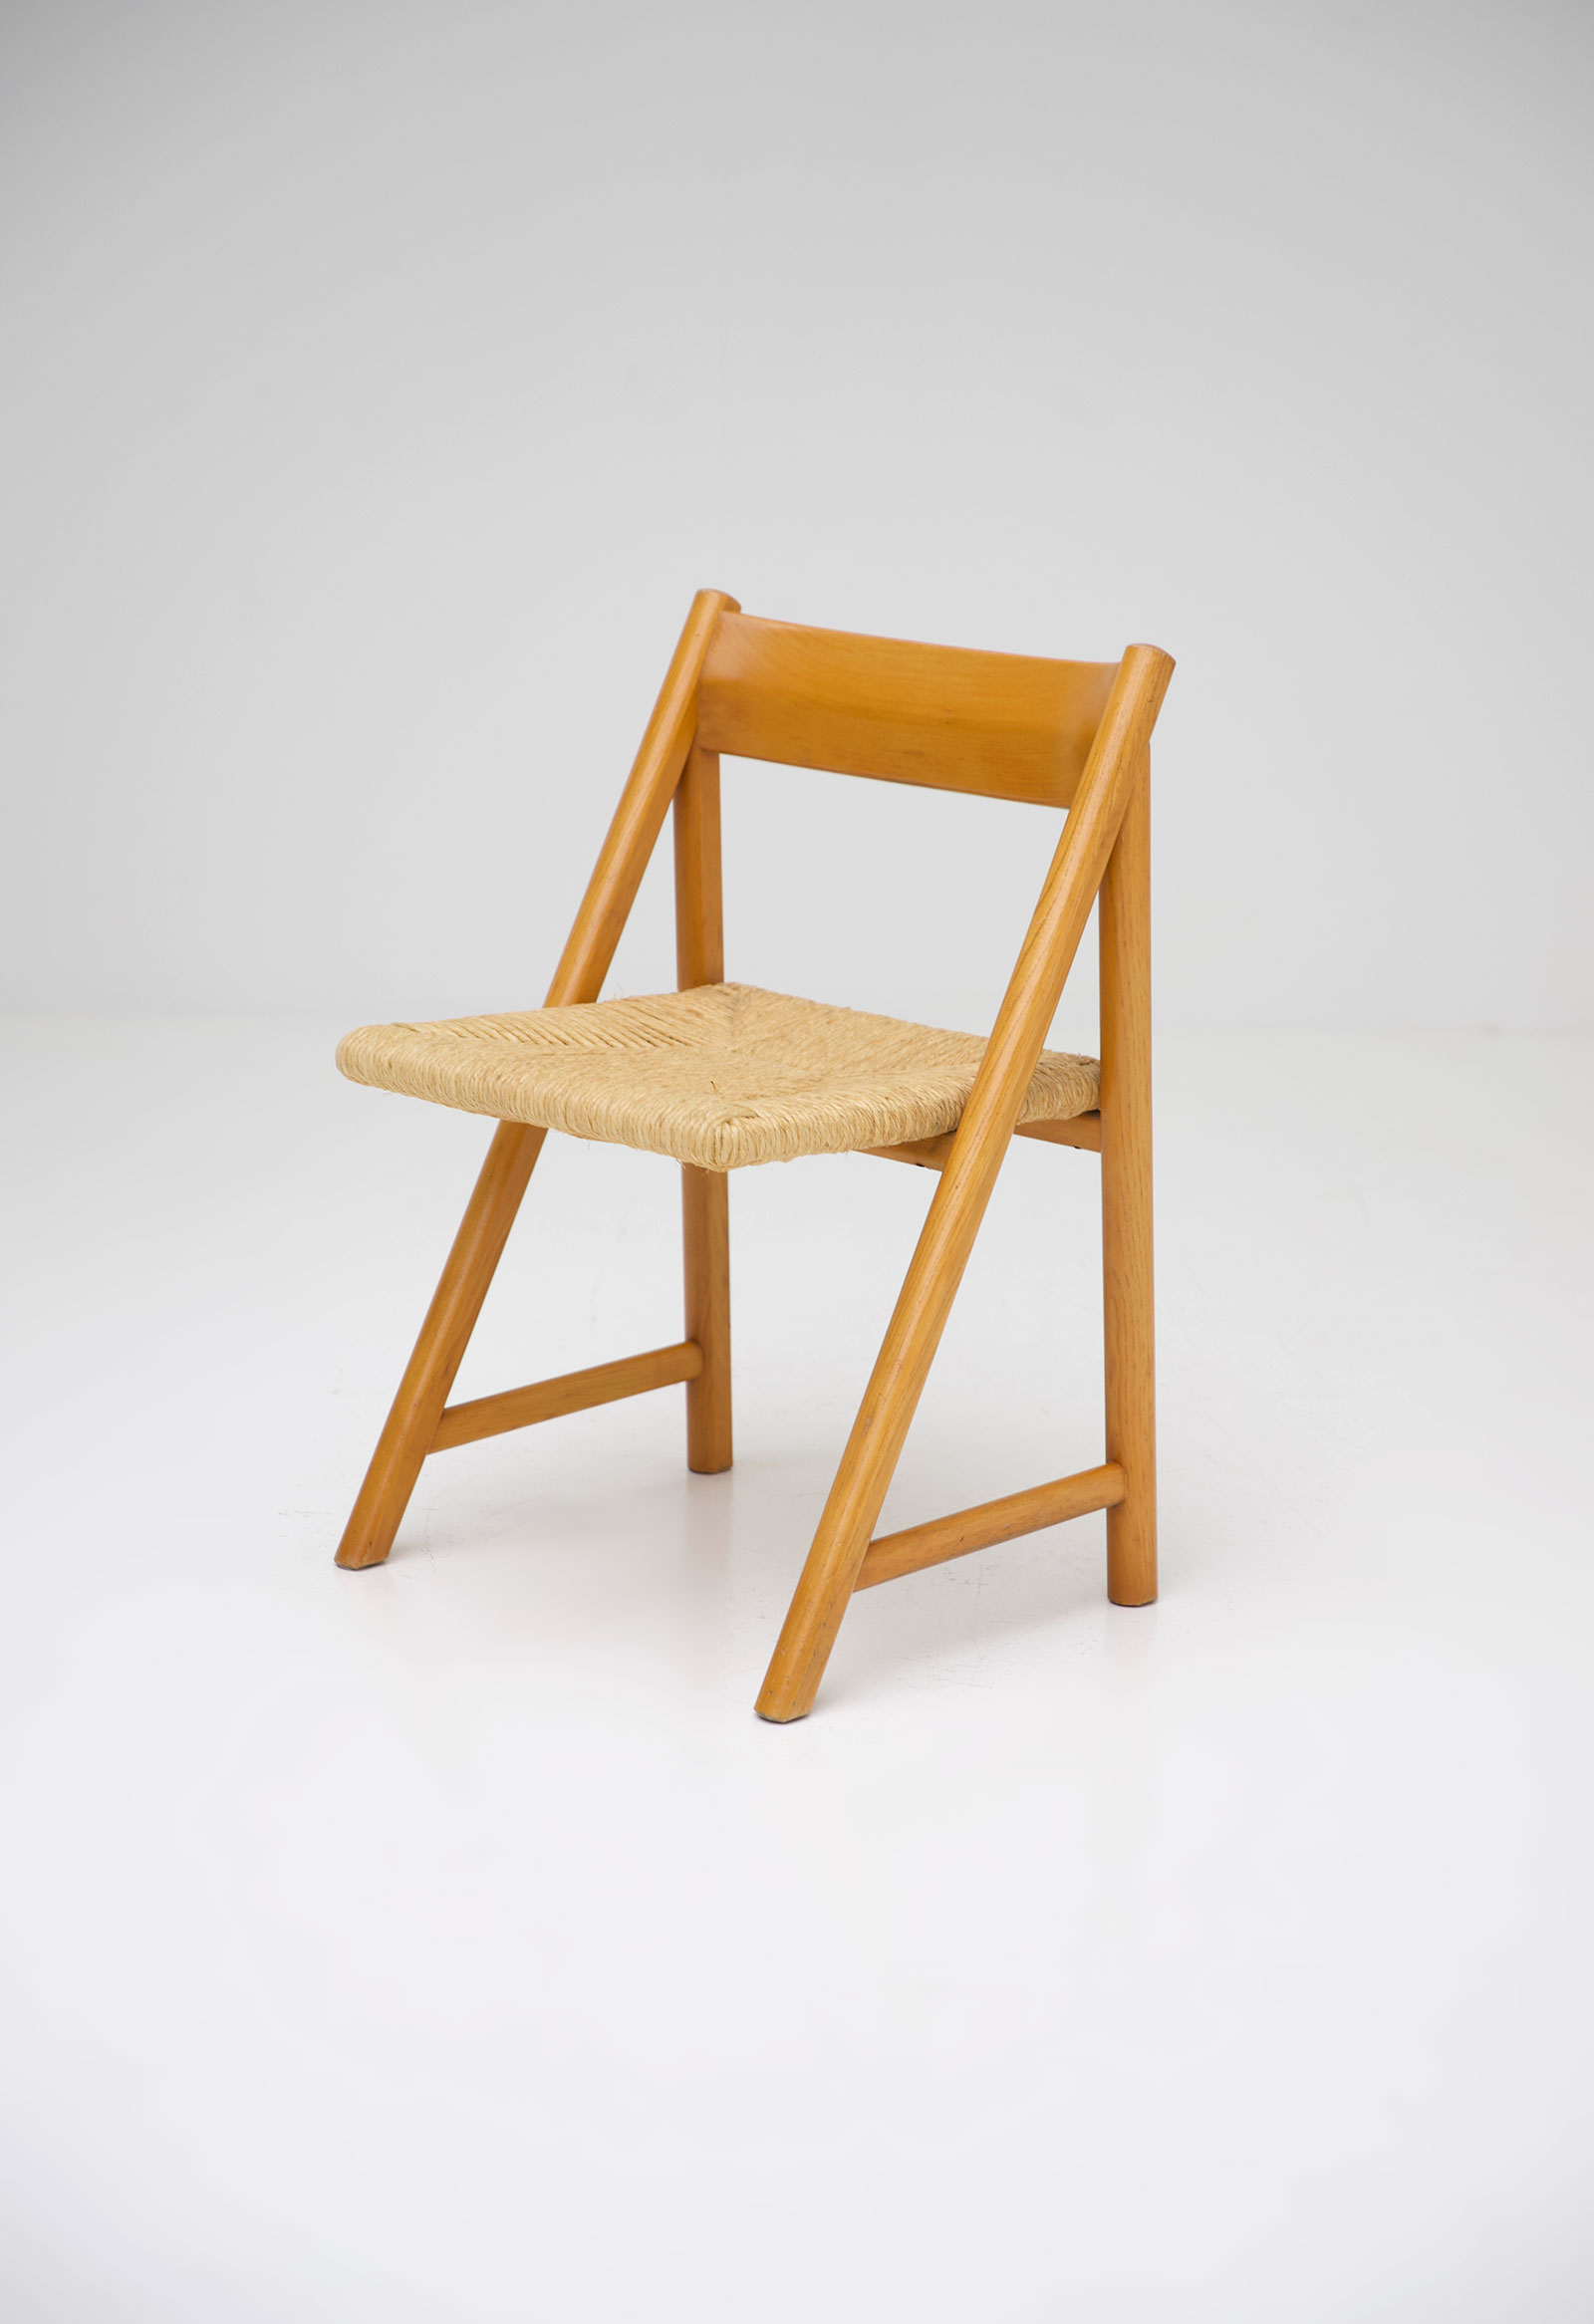 1960s Woven Cane Chairsimage 11